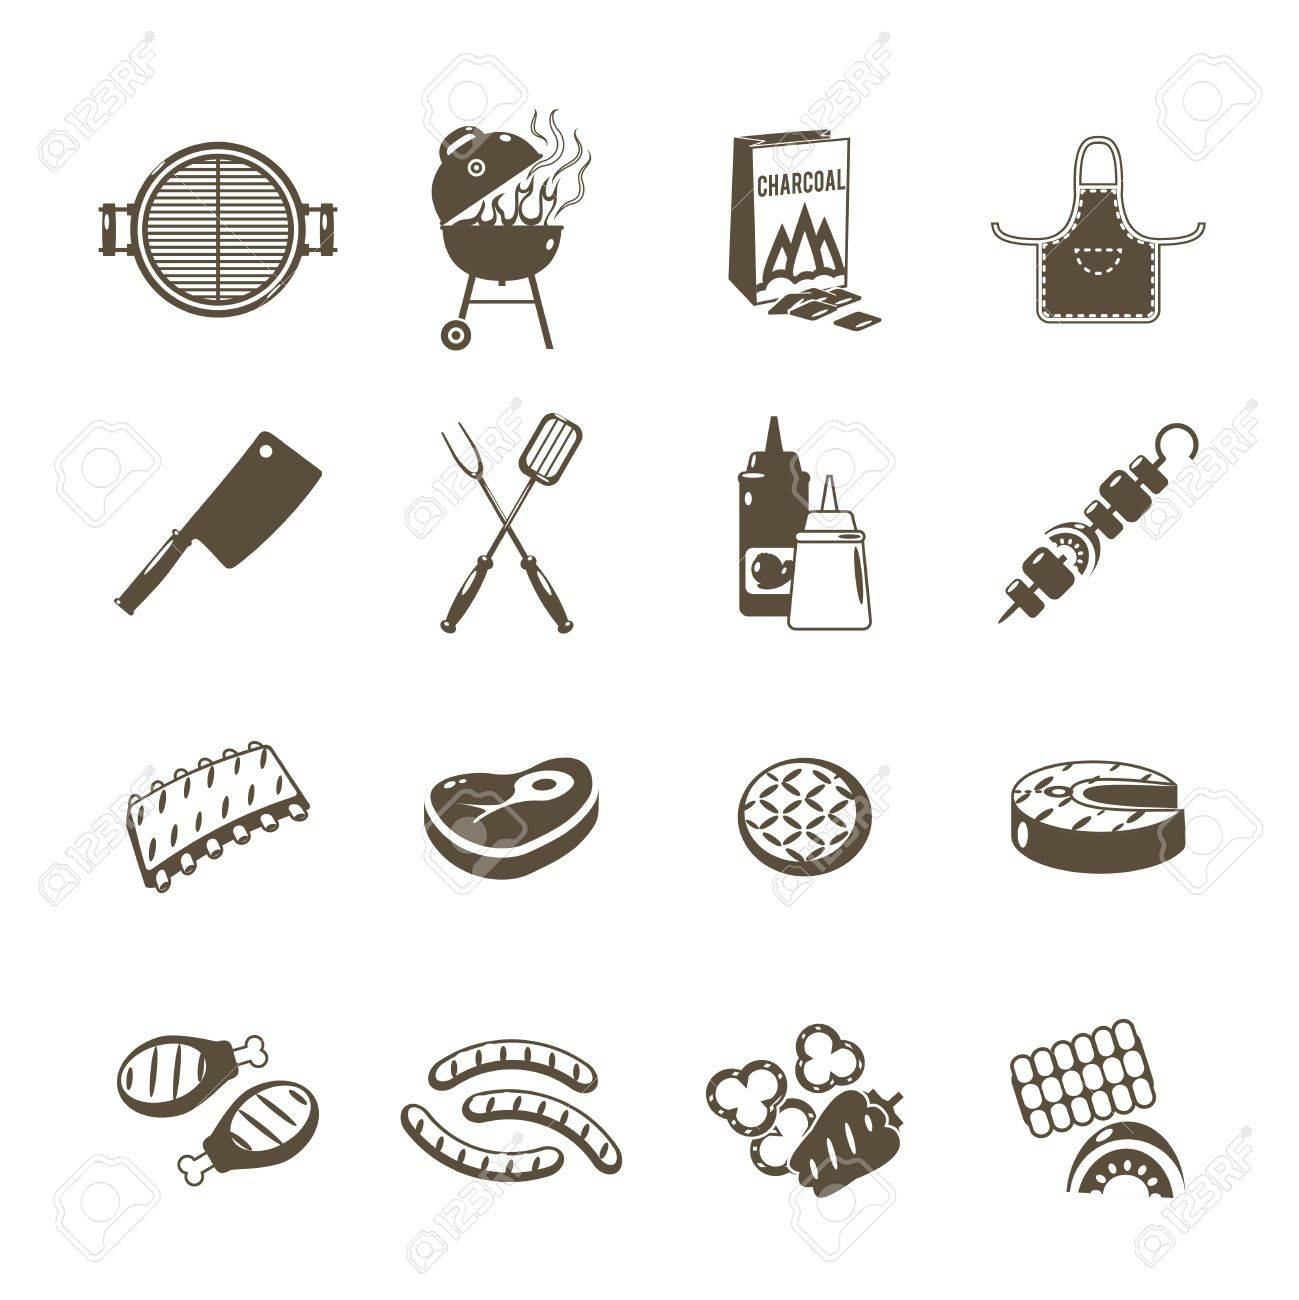 Barbecue grill and outdoor summer picnic utensil icons black set isolated vector illustration - 40459275